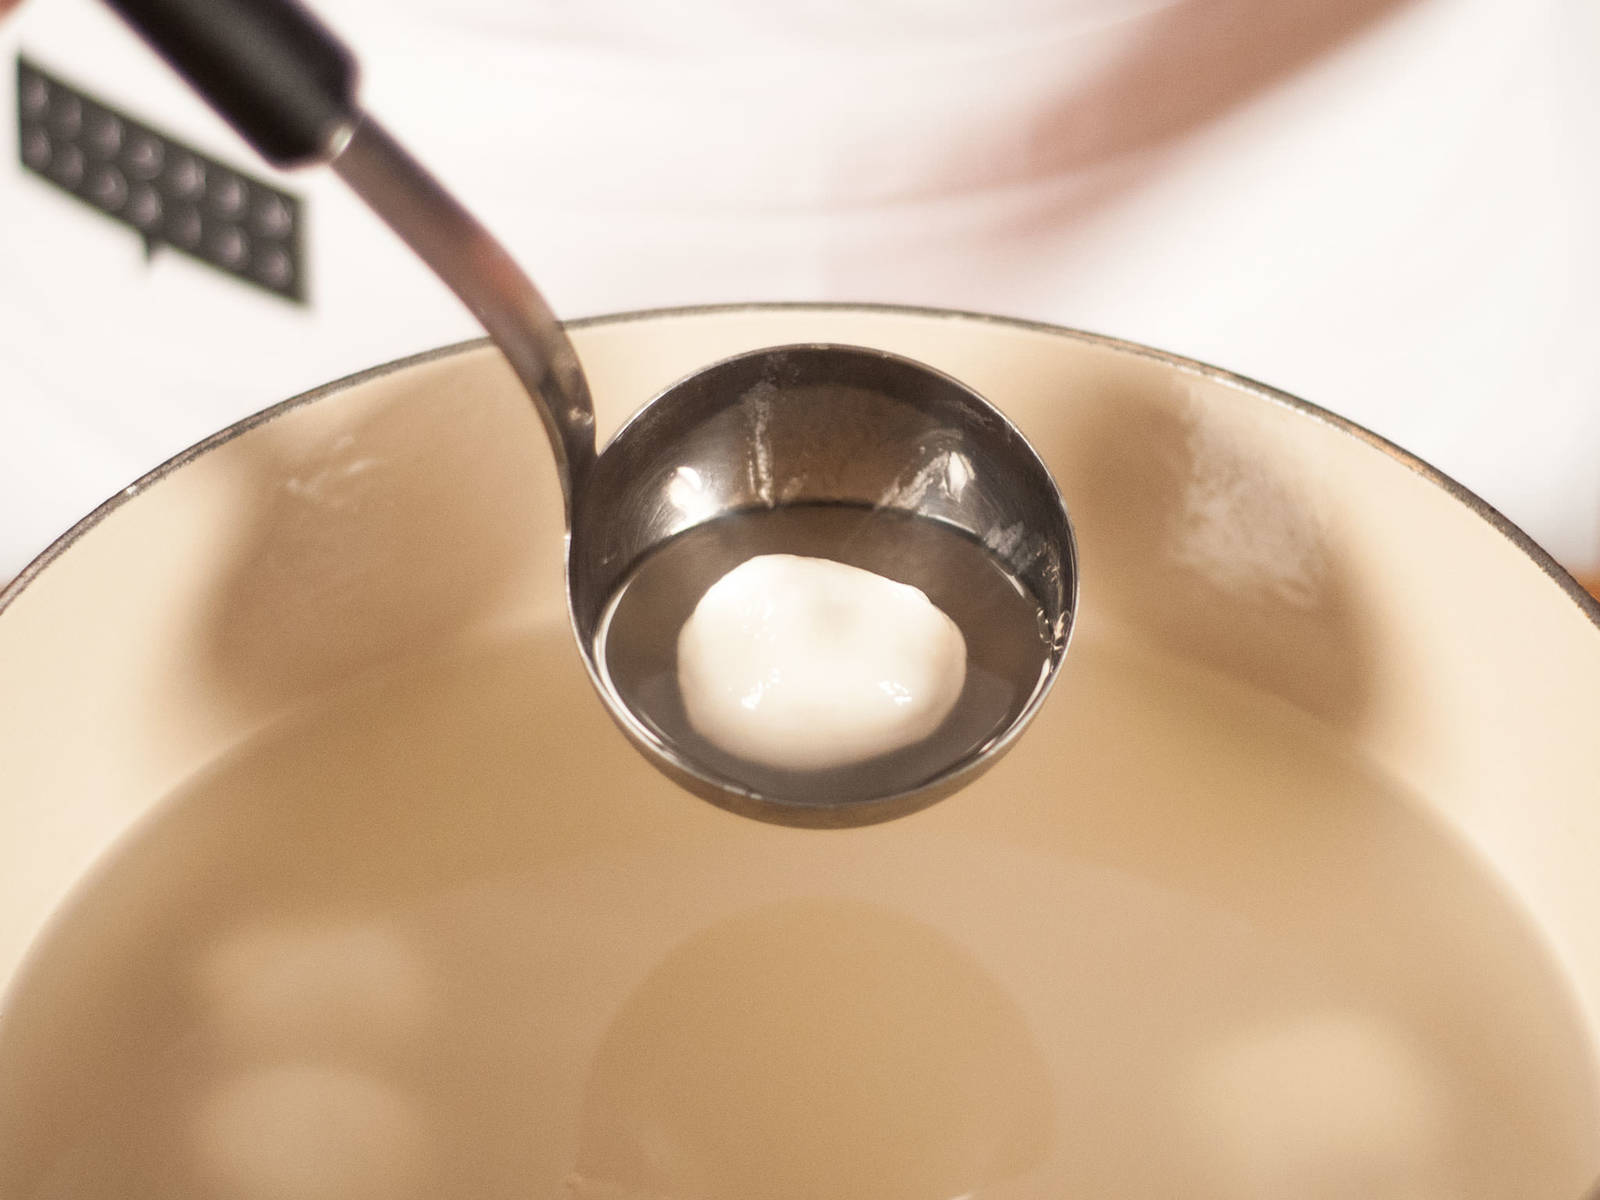 Add water to a large saucepan and bring to a boil. Place balls in boiling water and reduce heat. Immediately stir to avoid sticking. Cover and allow to steep for approx. 3 – 5 min. until dumplings rise to the surface. Serve with cooking water.